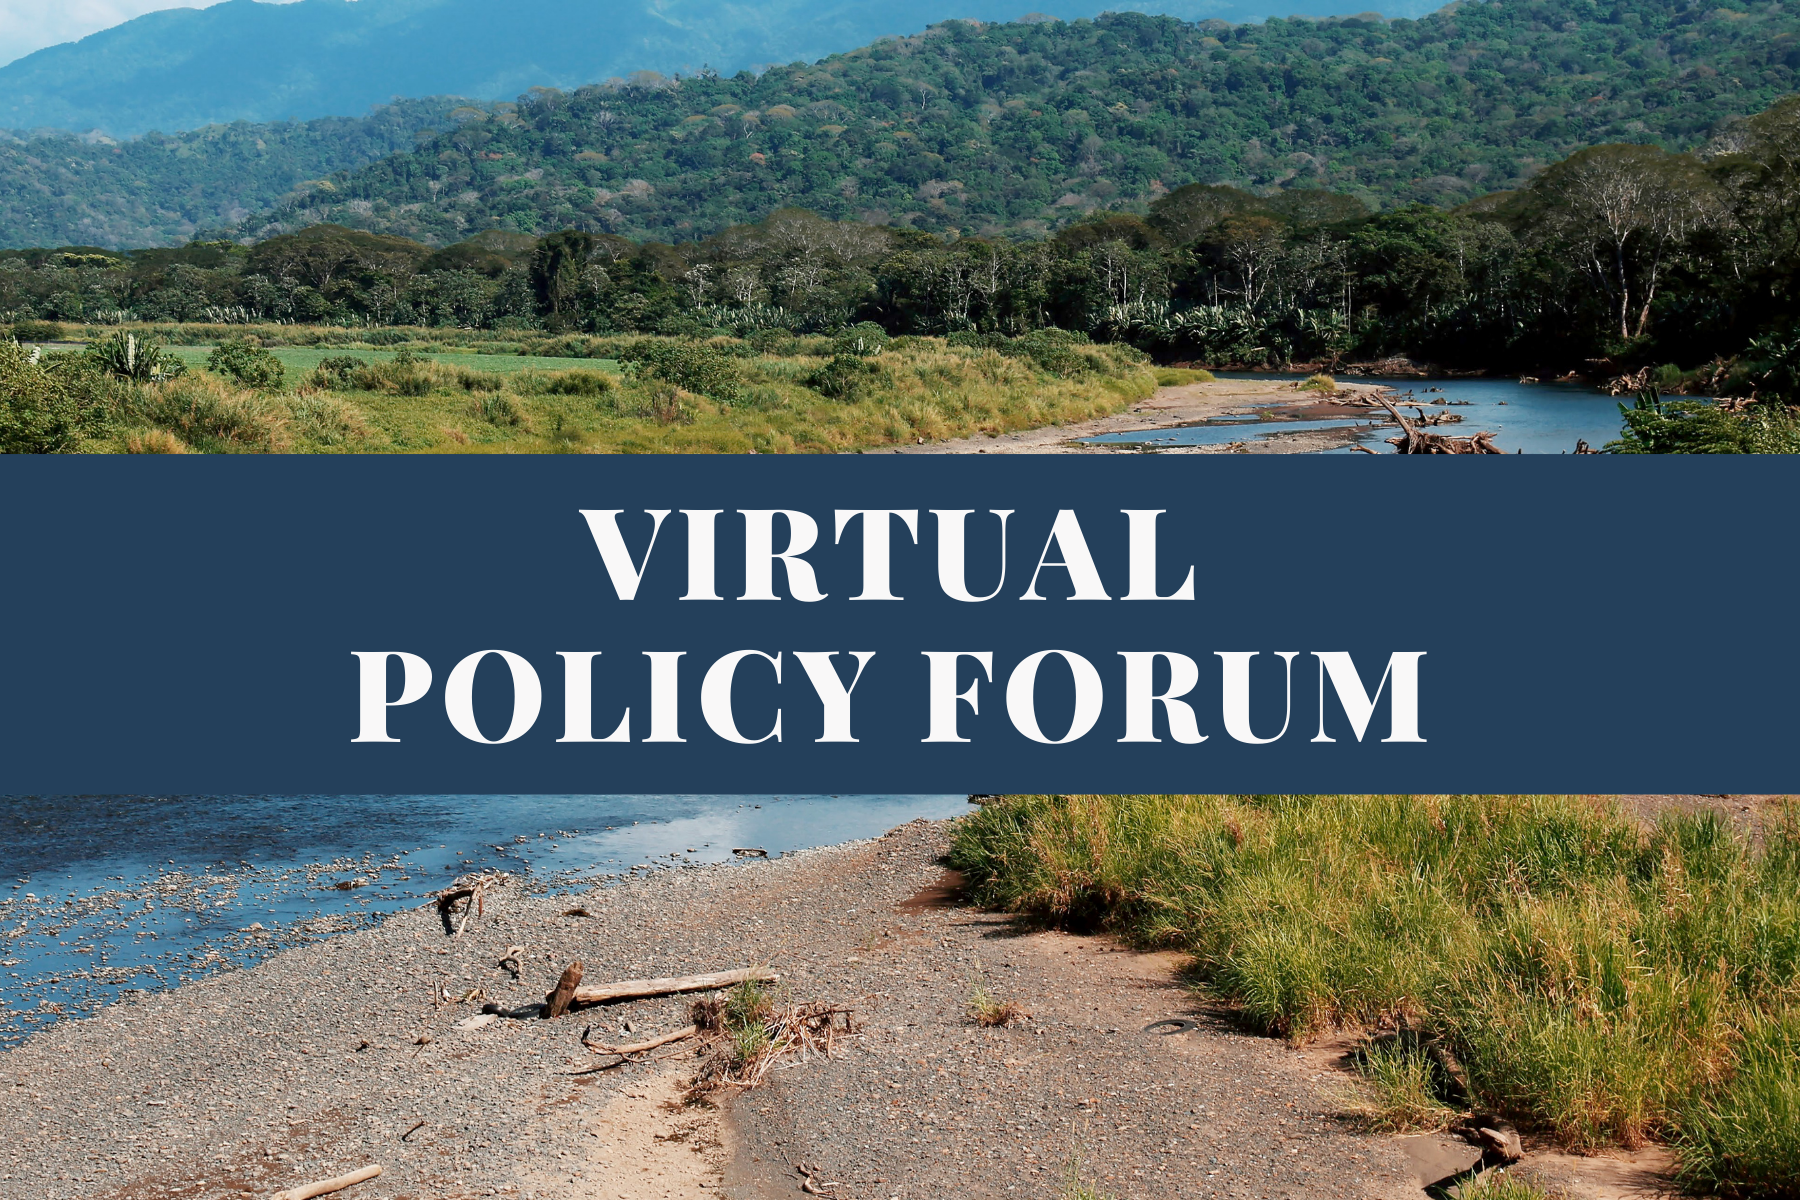 Virtual Policy Forum